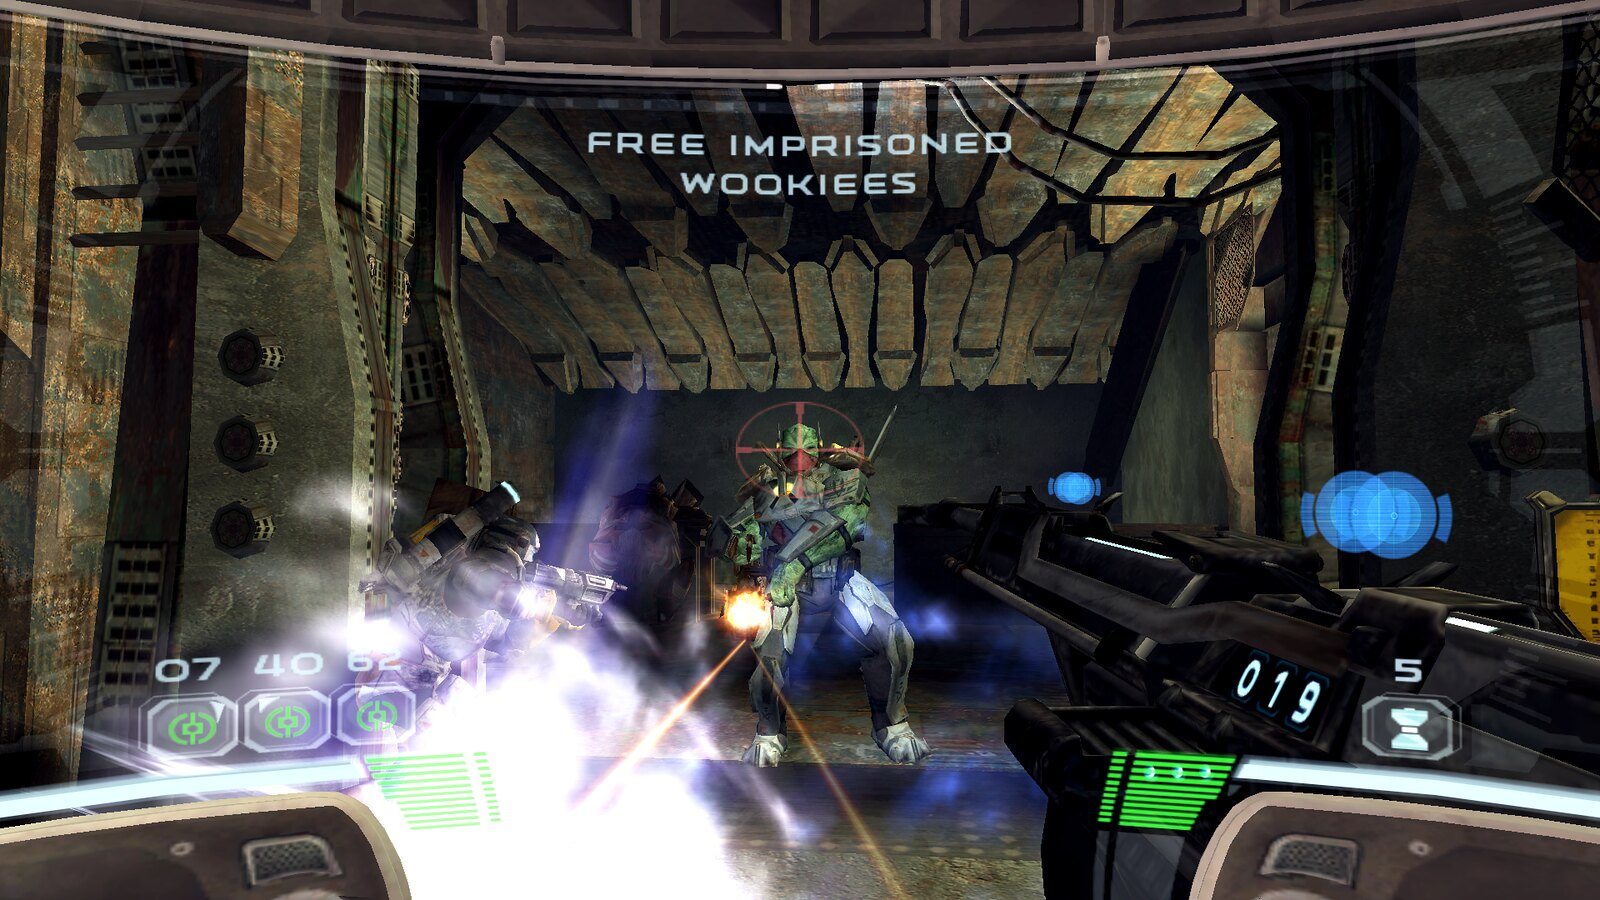 star-wars-republic-commando-launches-on-ps4-this-april-playstation-blog